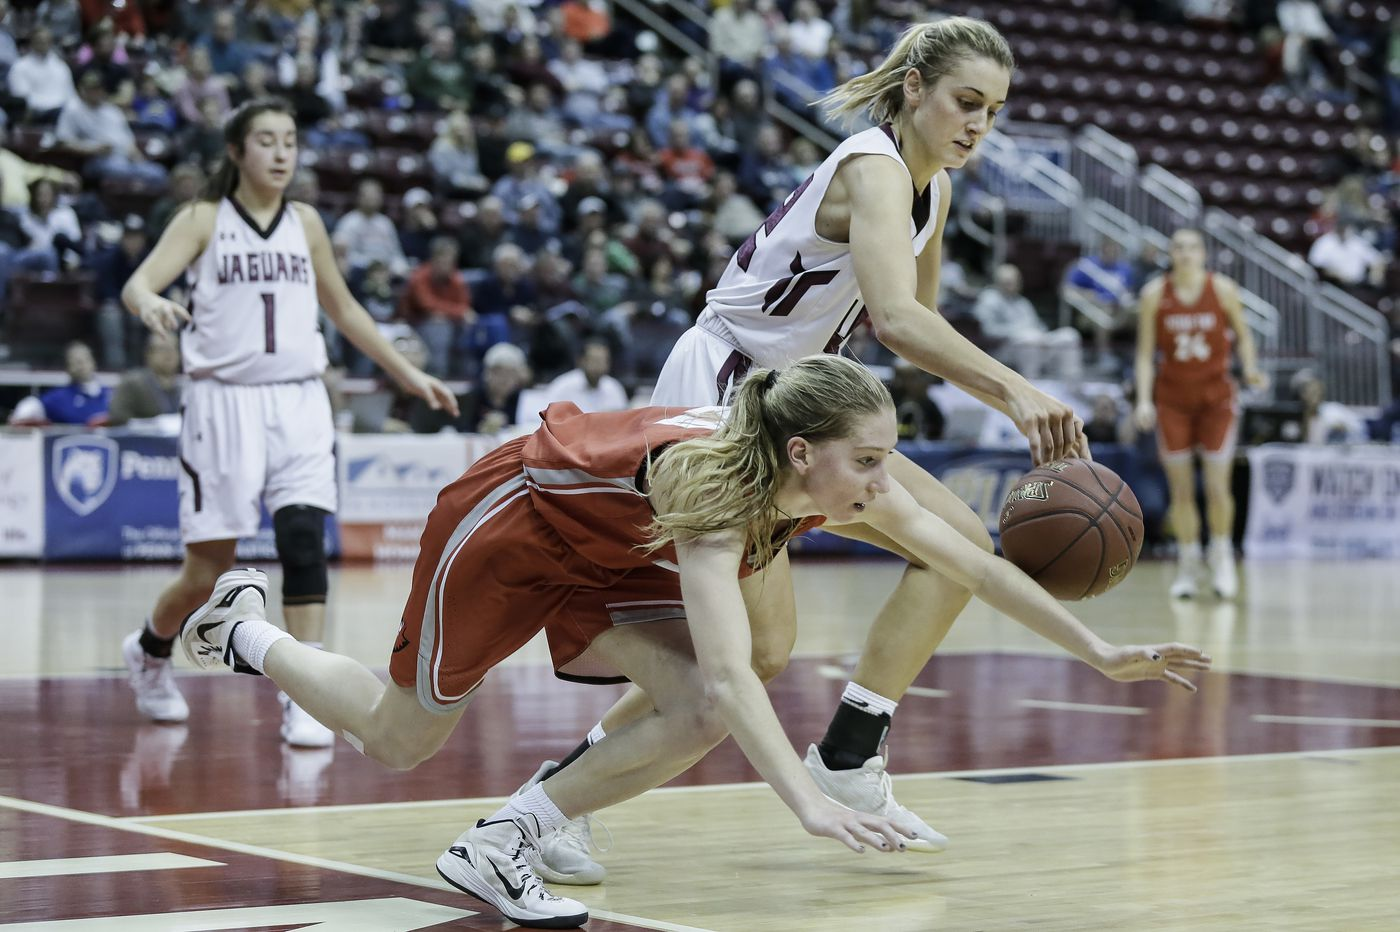 Garnet Valley falls in PIAA Class 6A girls' basketball state championship to Peters Township